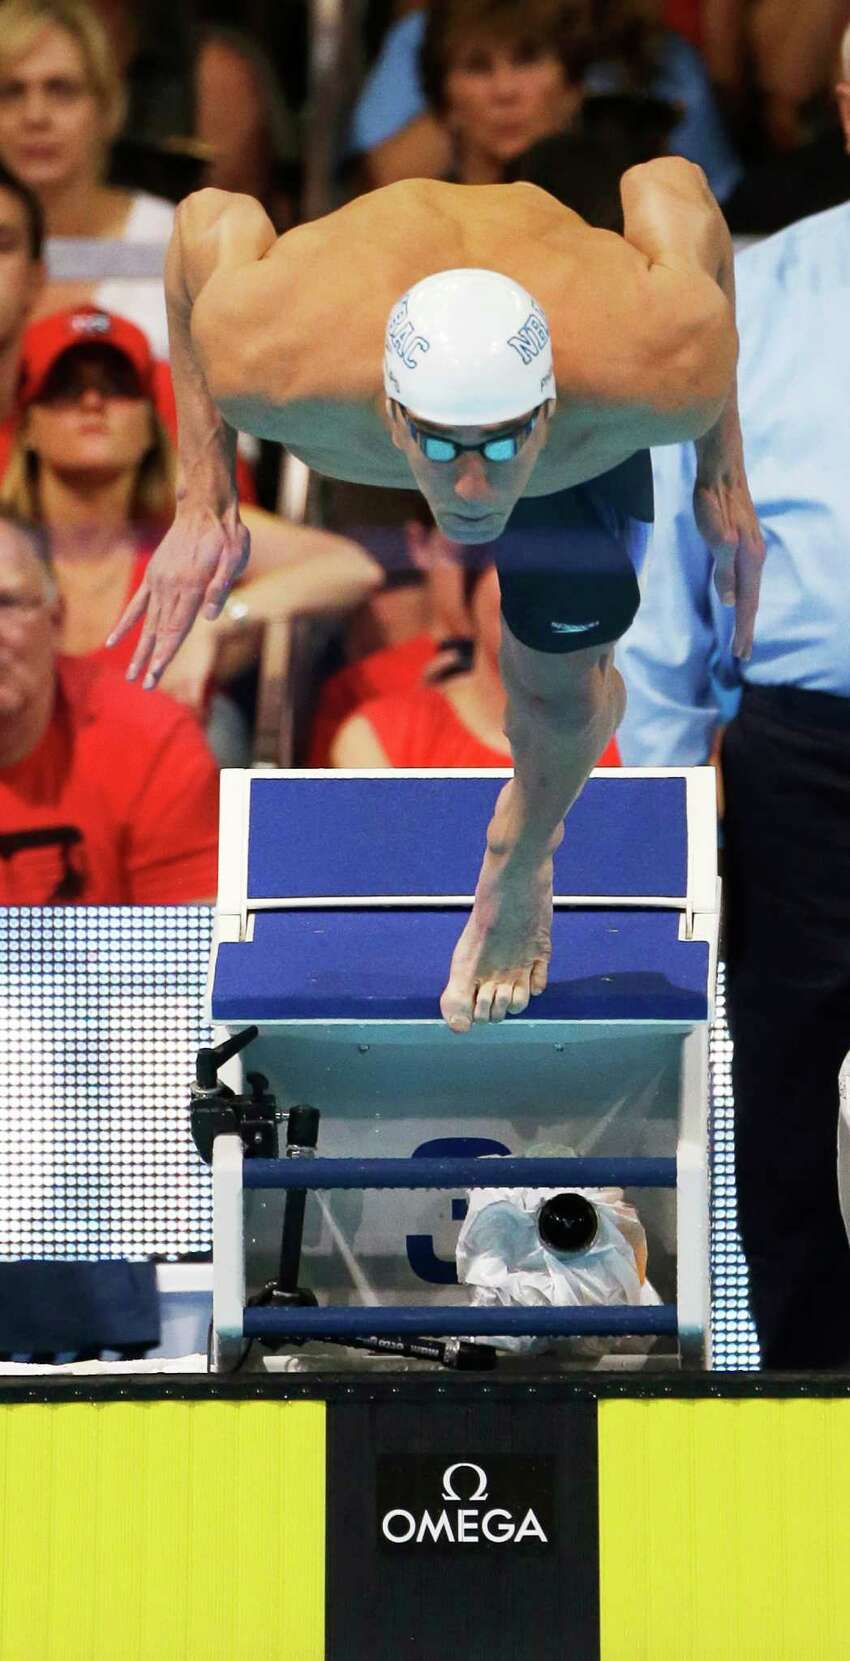 Michael Phelps dives at the start of the men's 200-meter butterfly final at the U.S. Olympic swimming trials on Thursday, June 28, 2012, in Omaha, Neb. Phelps won the final. (AP Photo/Mark Humphrey)